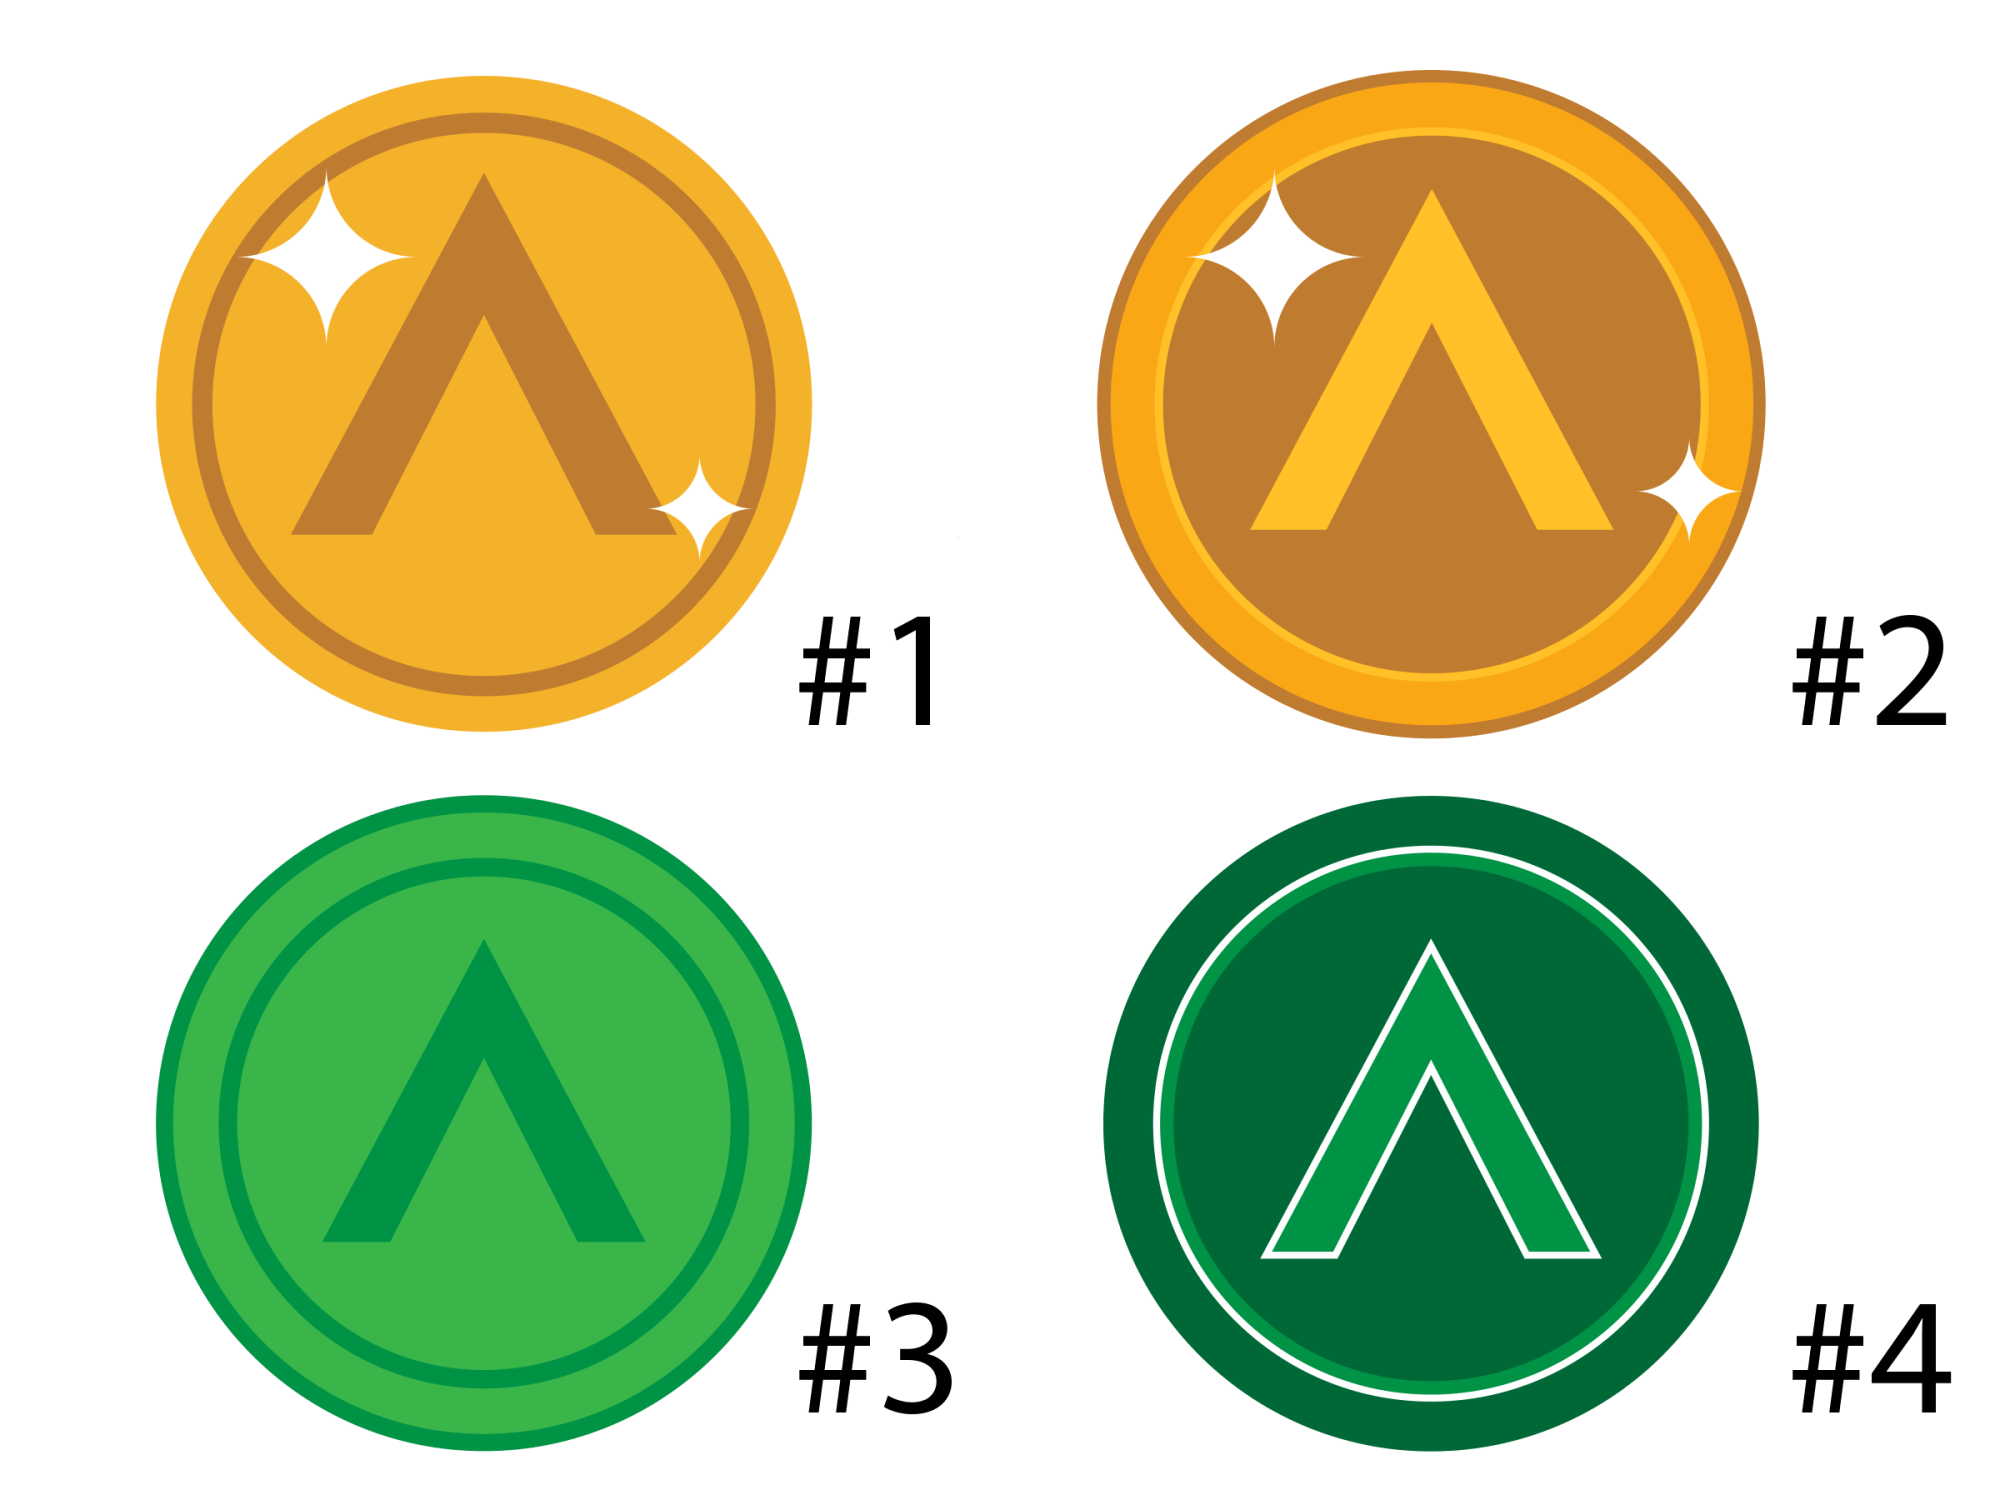 Design choices for ARS COIN (created by ANNETTE KIM)